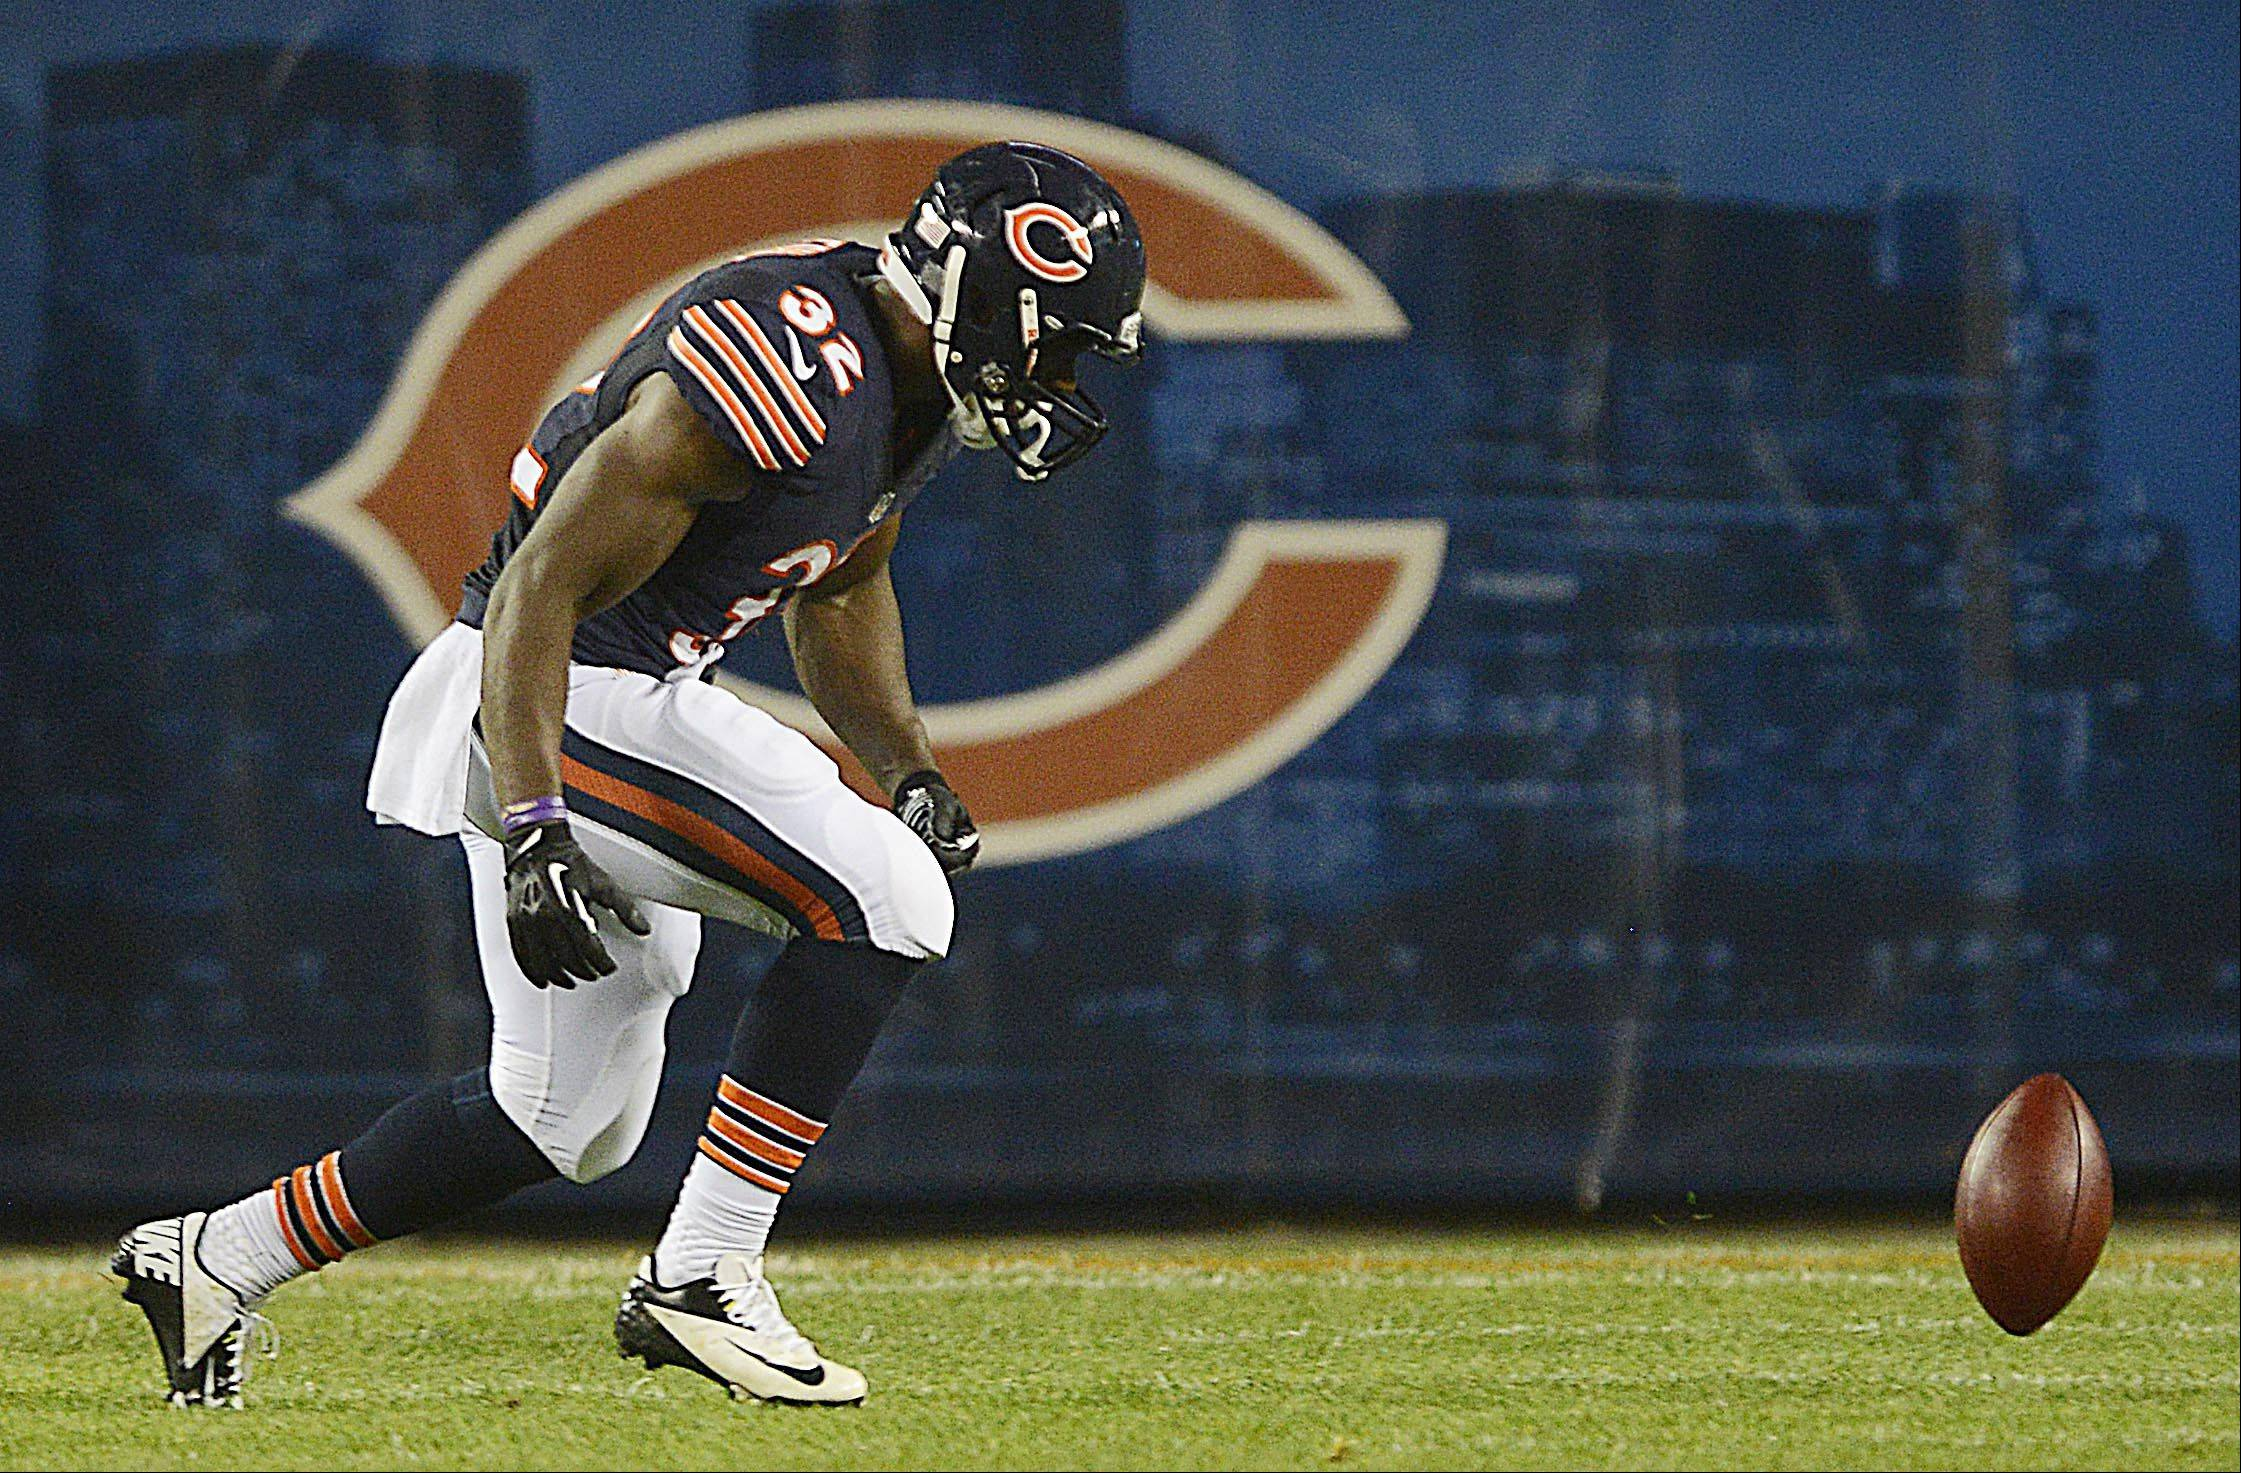 Running back Michael Ford will be chasing the football in a Bears uniform this season, having survived the cut Friday.